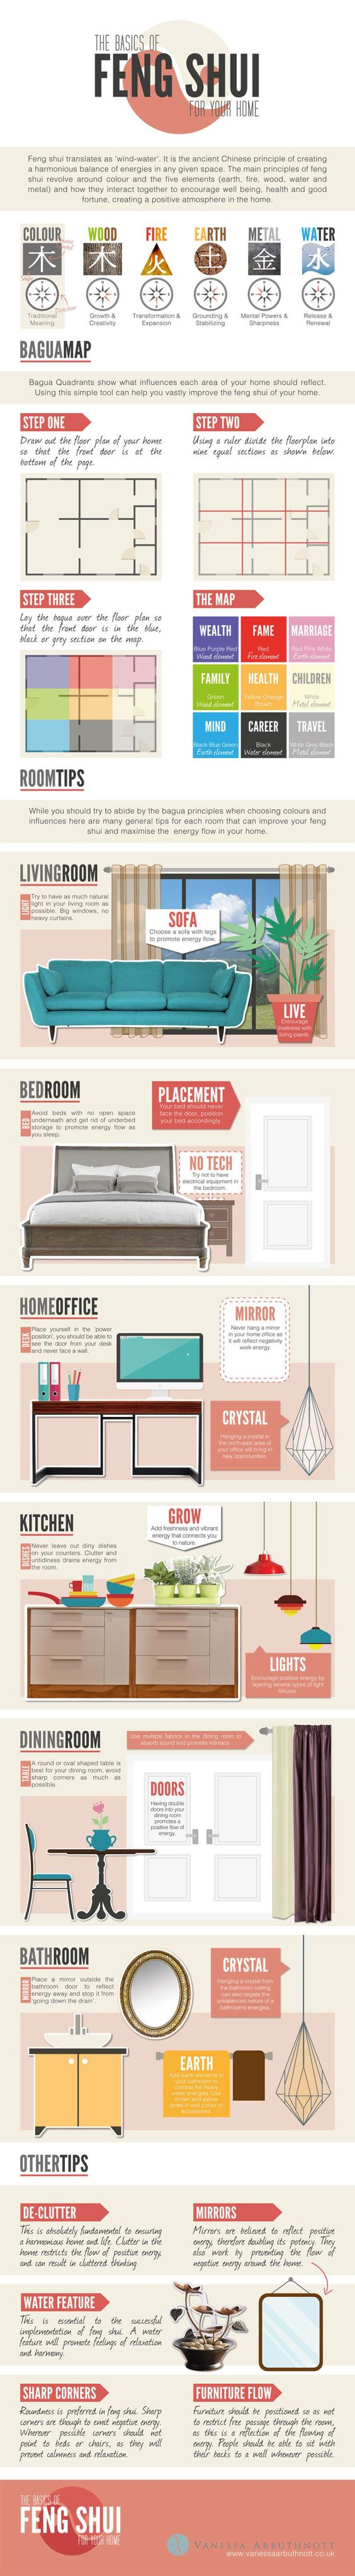 Infographic your basic guide to feng shui for the home for Feng shui house placement